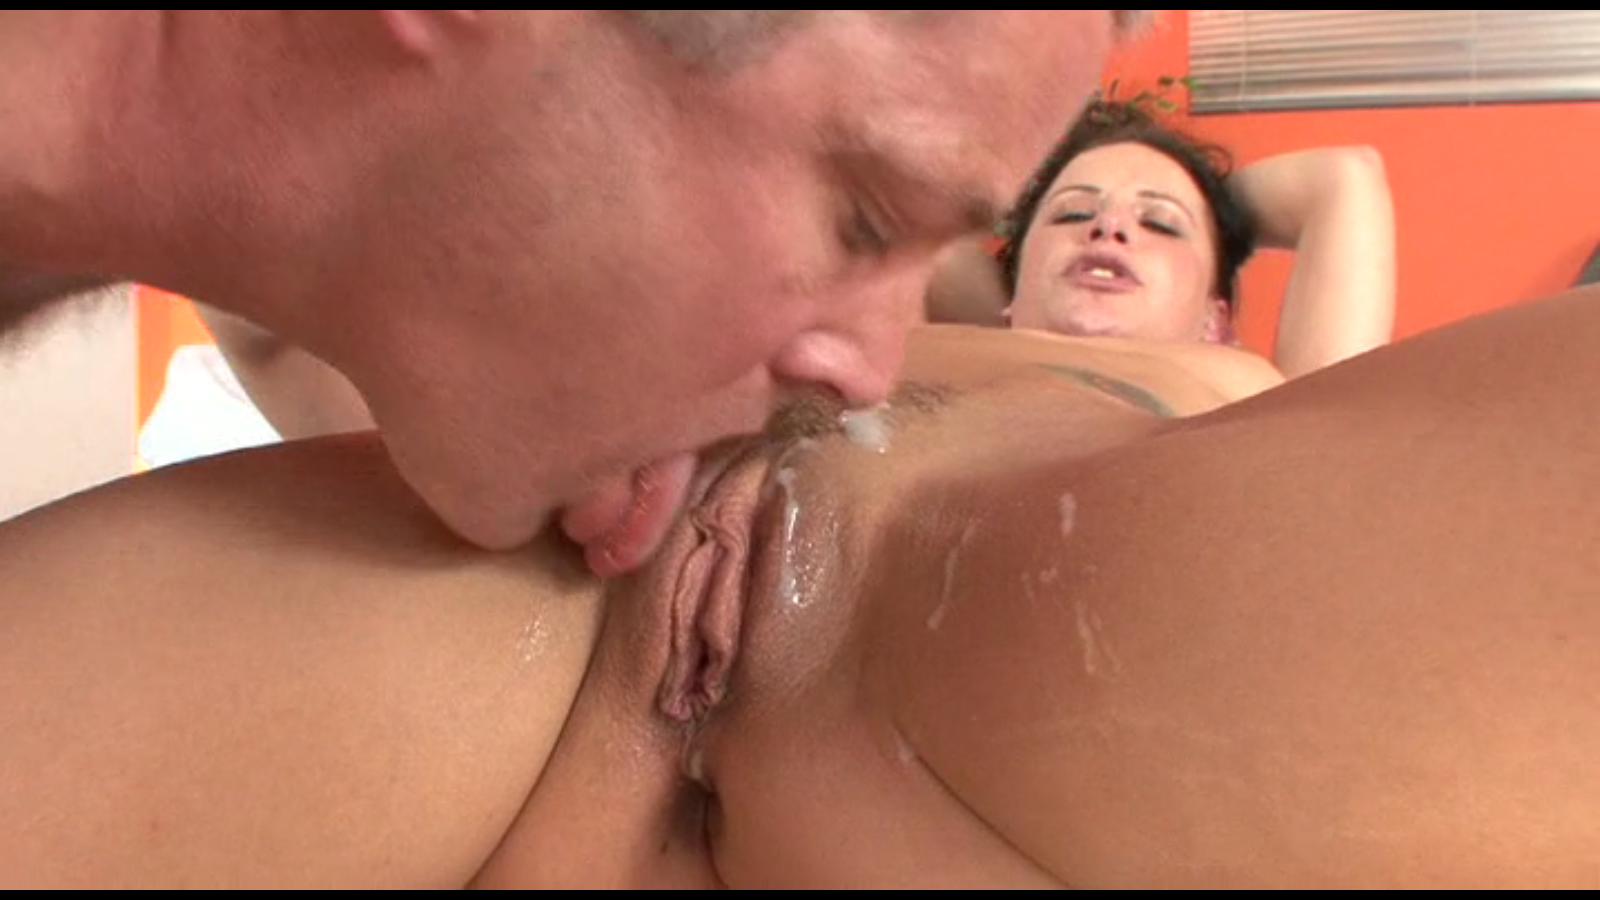 eating-pussy-when-she-squirts-redhead-chubby-girl-porn